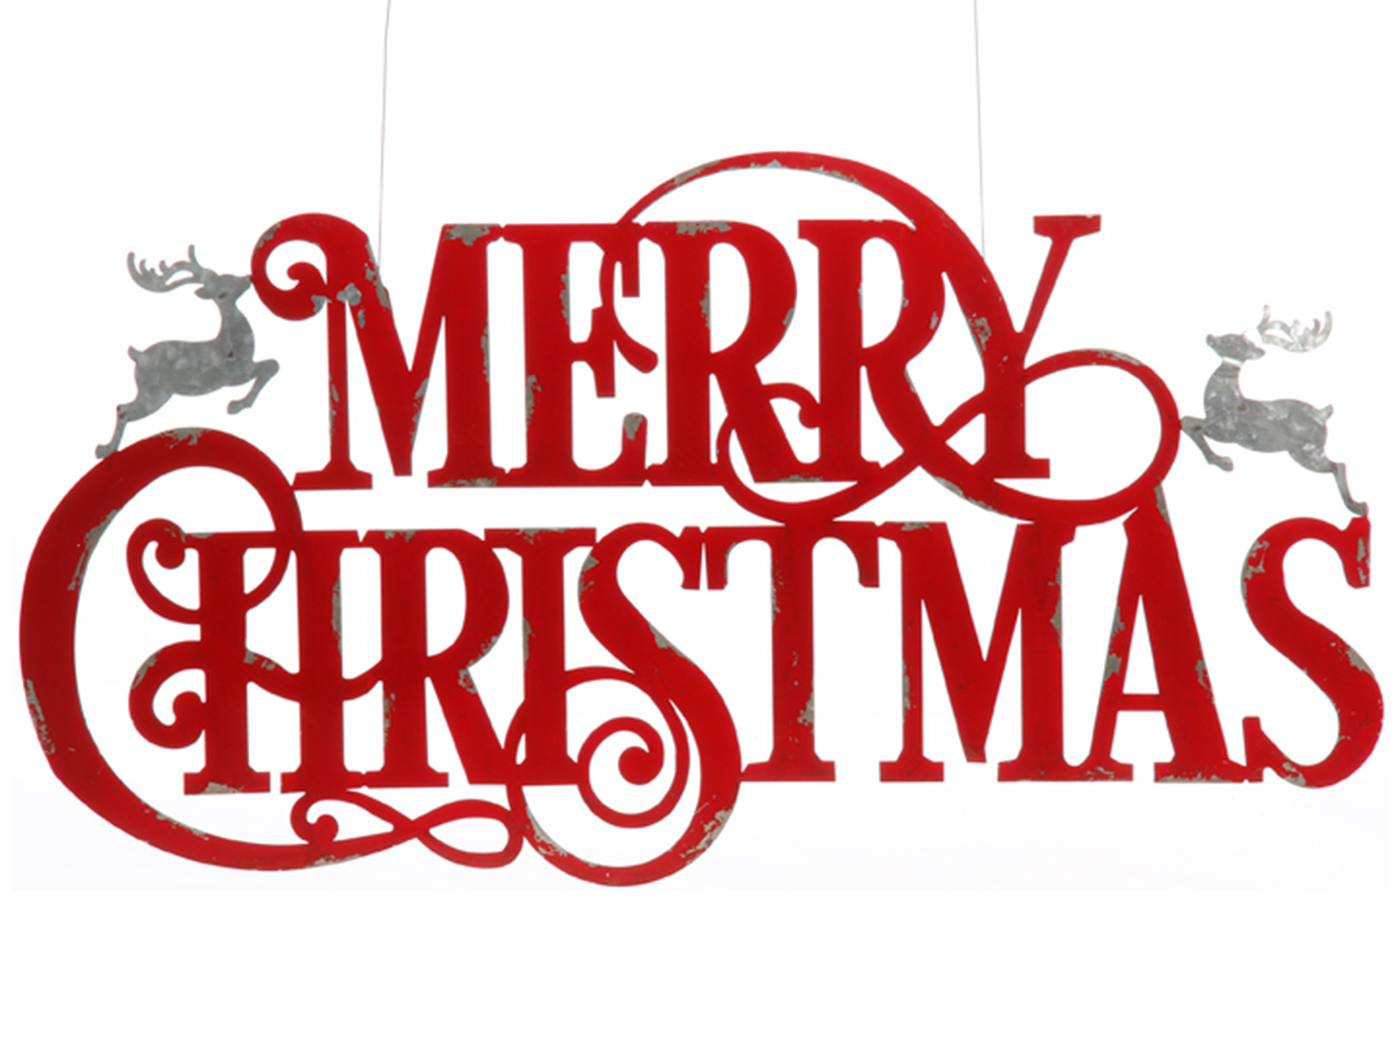 Red And Grey Metal Merry Christmas Wall Sign 36 W X 20 H